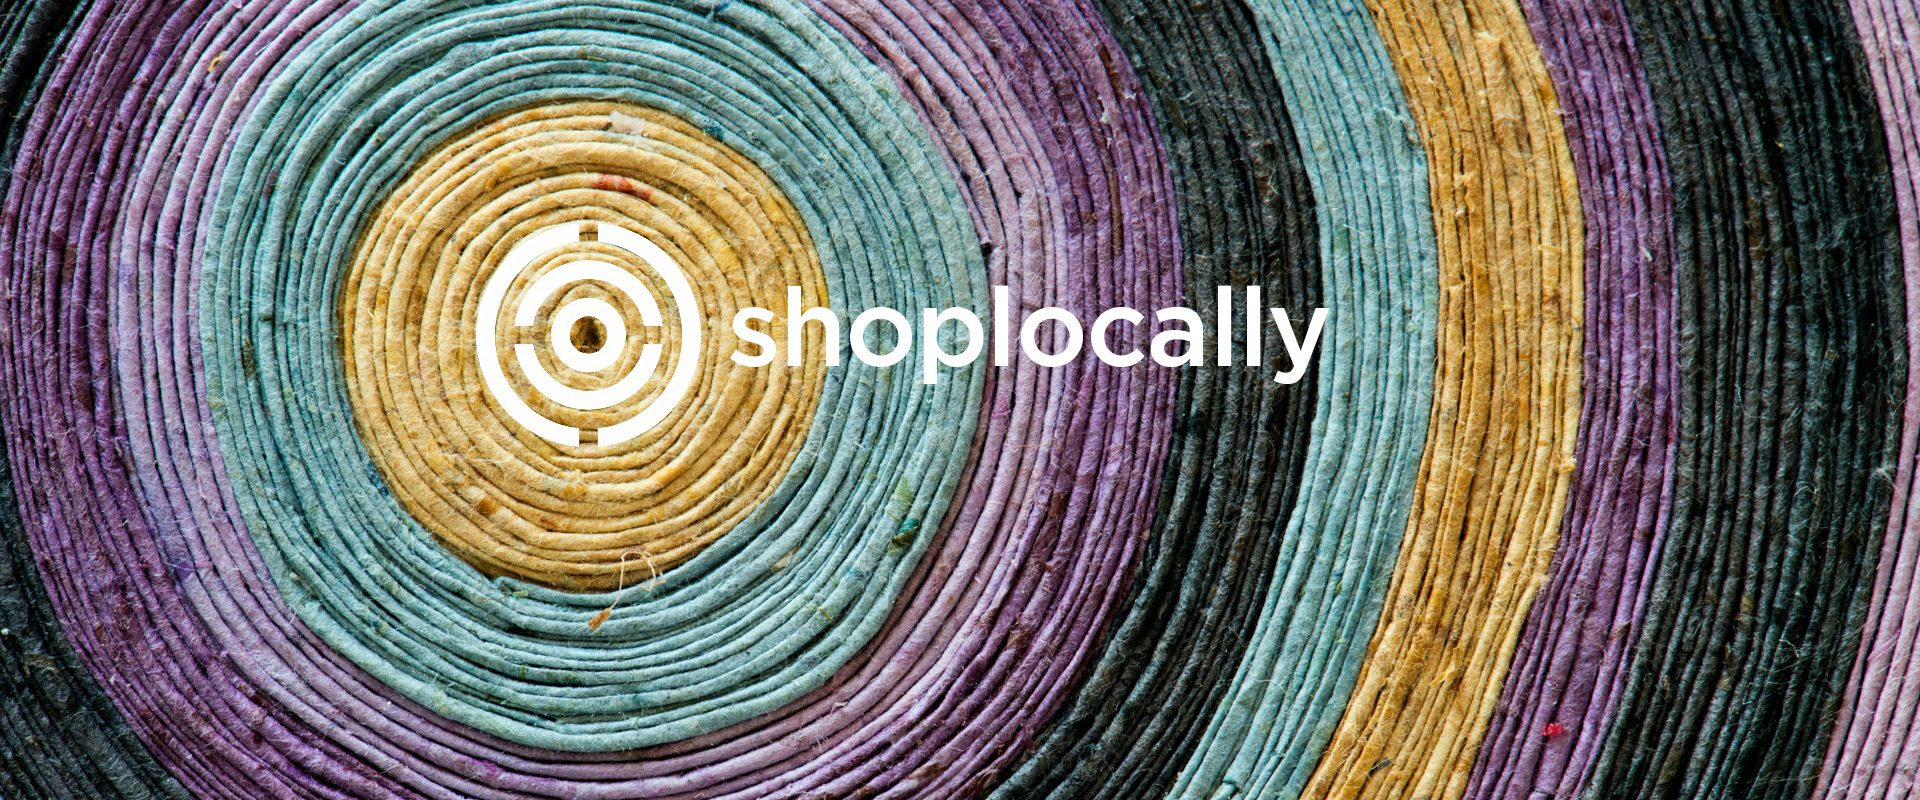 Shoplocally Marketplace